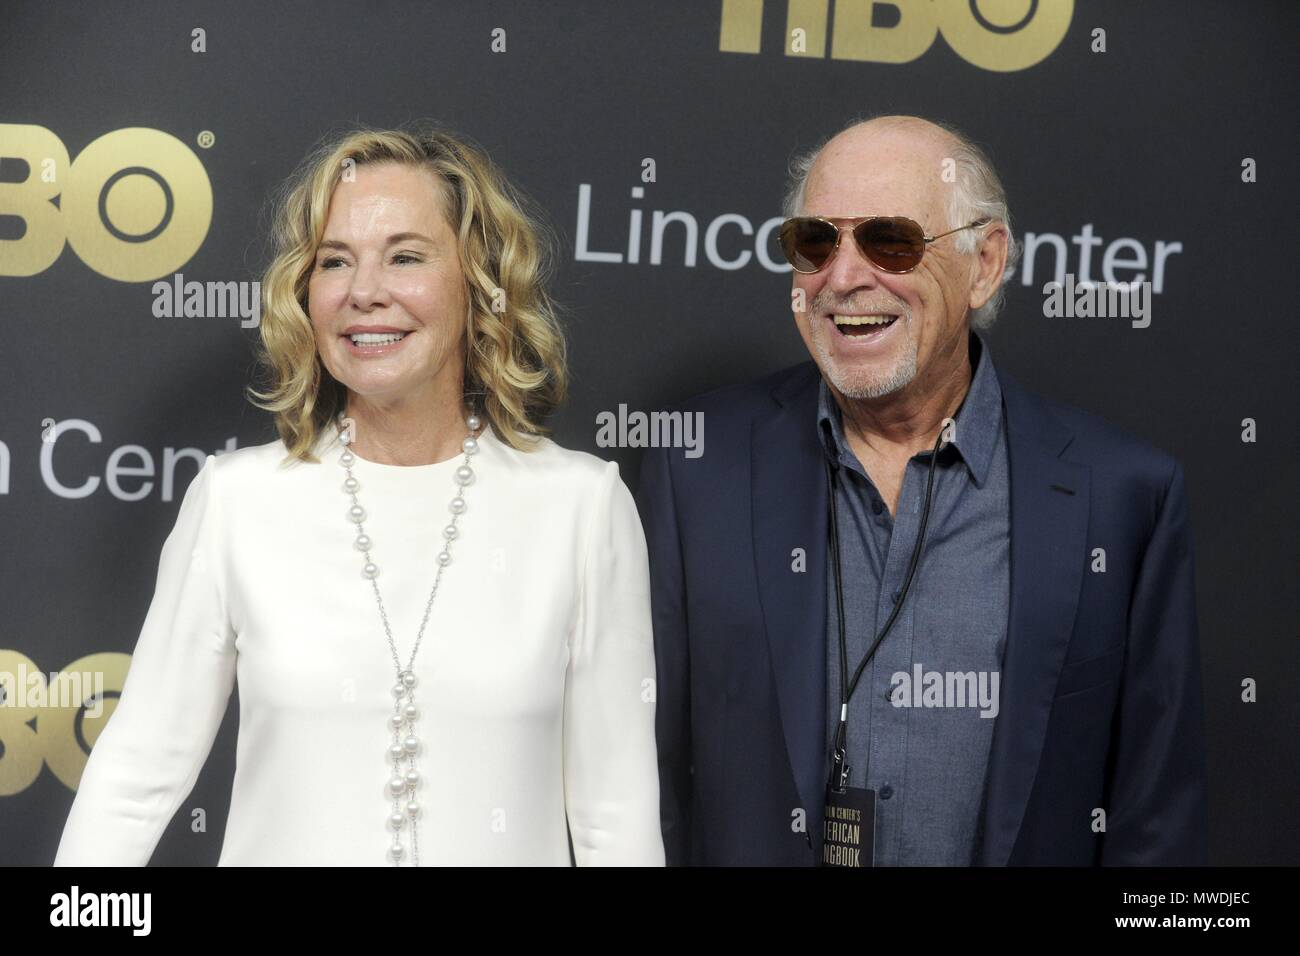 New York City  29th May, 2018  Jimmy Buffett and his wife Jane